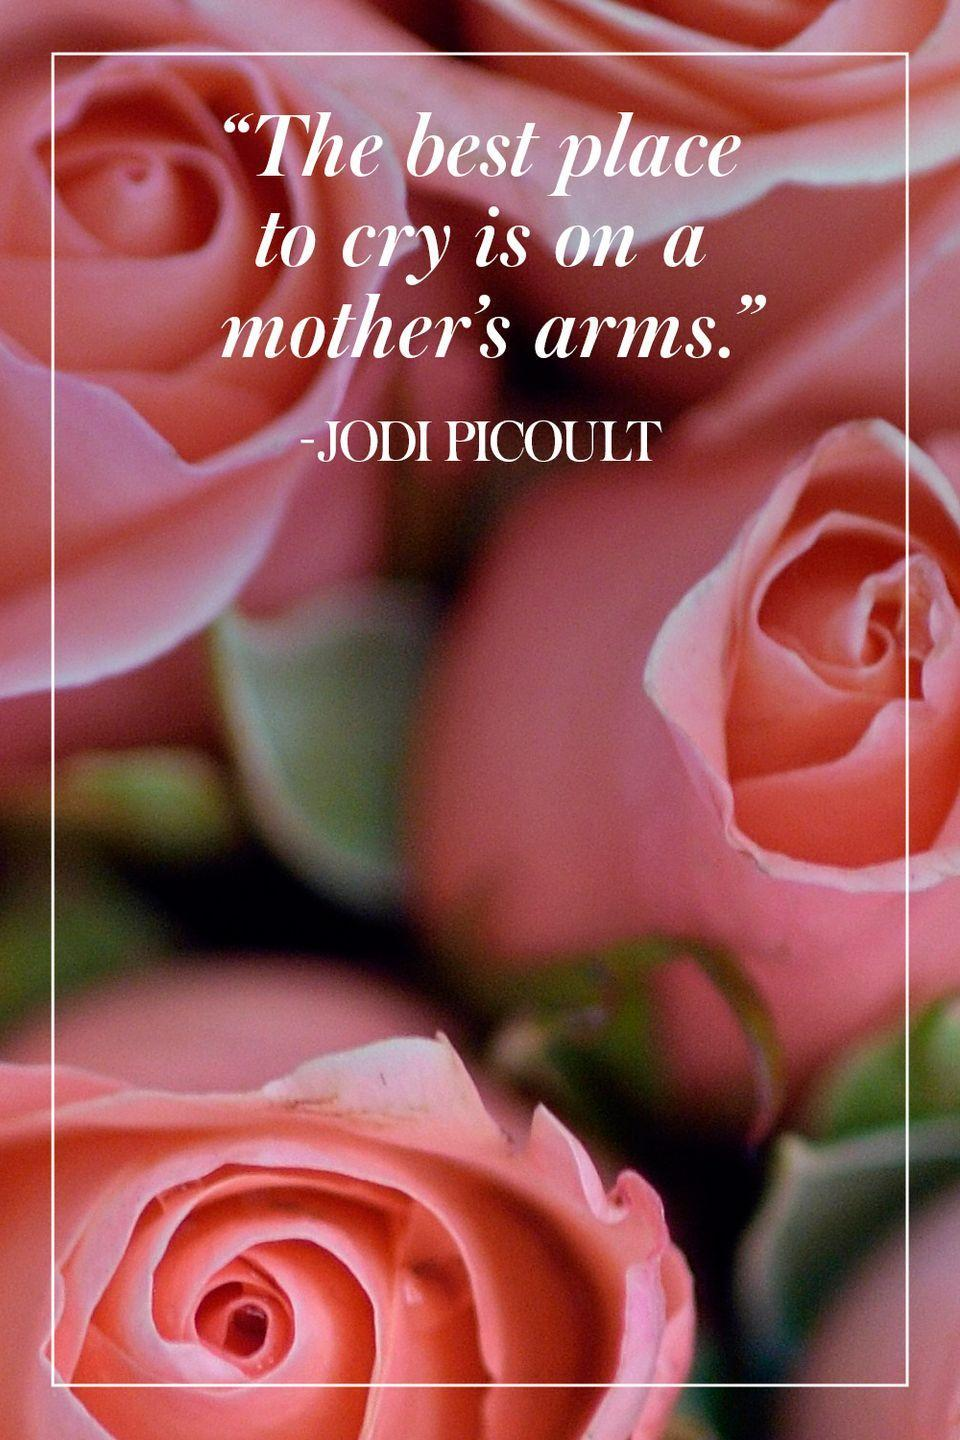 """<p>""""The best place to cry is on a mother's arms.""""</p><p>- Jodi Picoult</p>"""